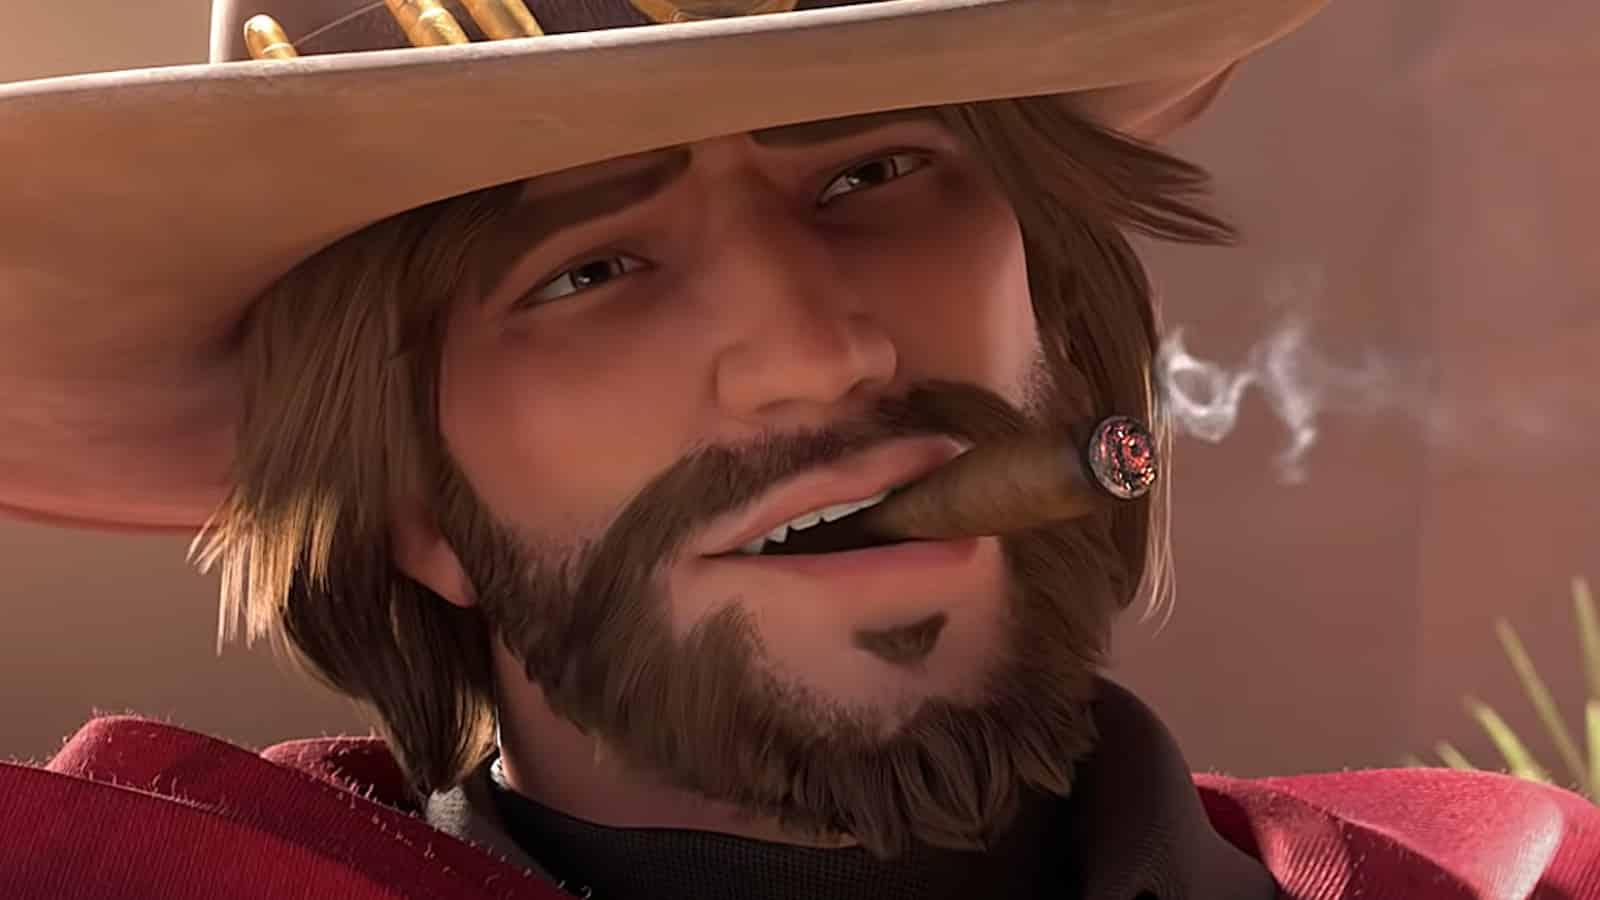 Overwatch's Jesse McCree Given A Name Change